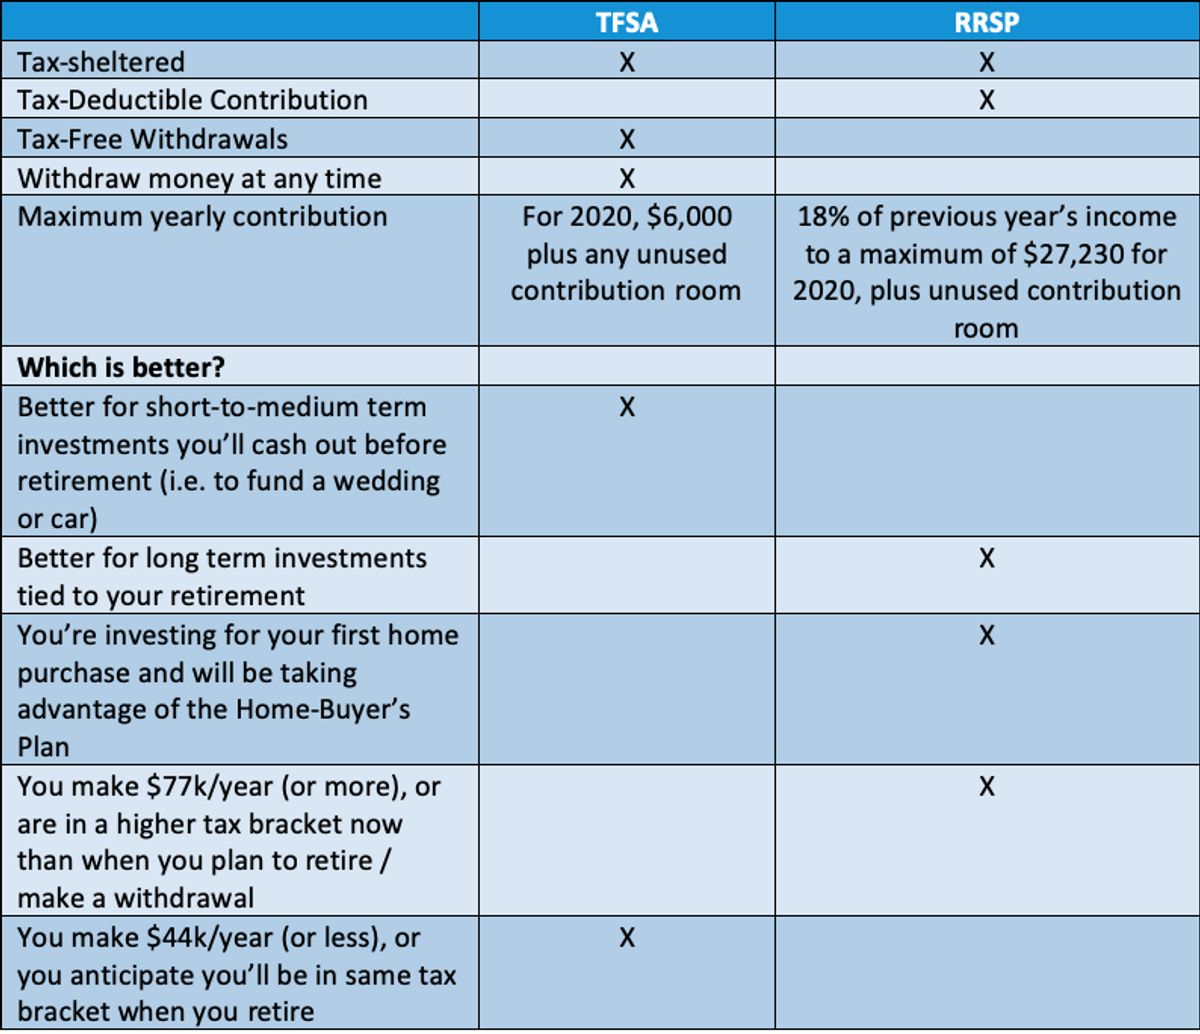 TFSA vs RRSP: Overview